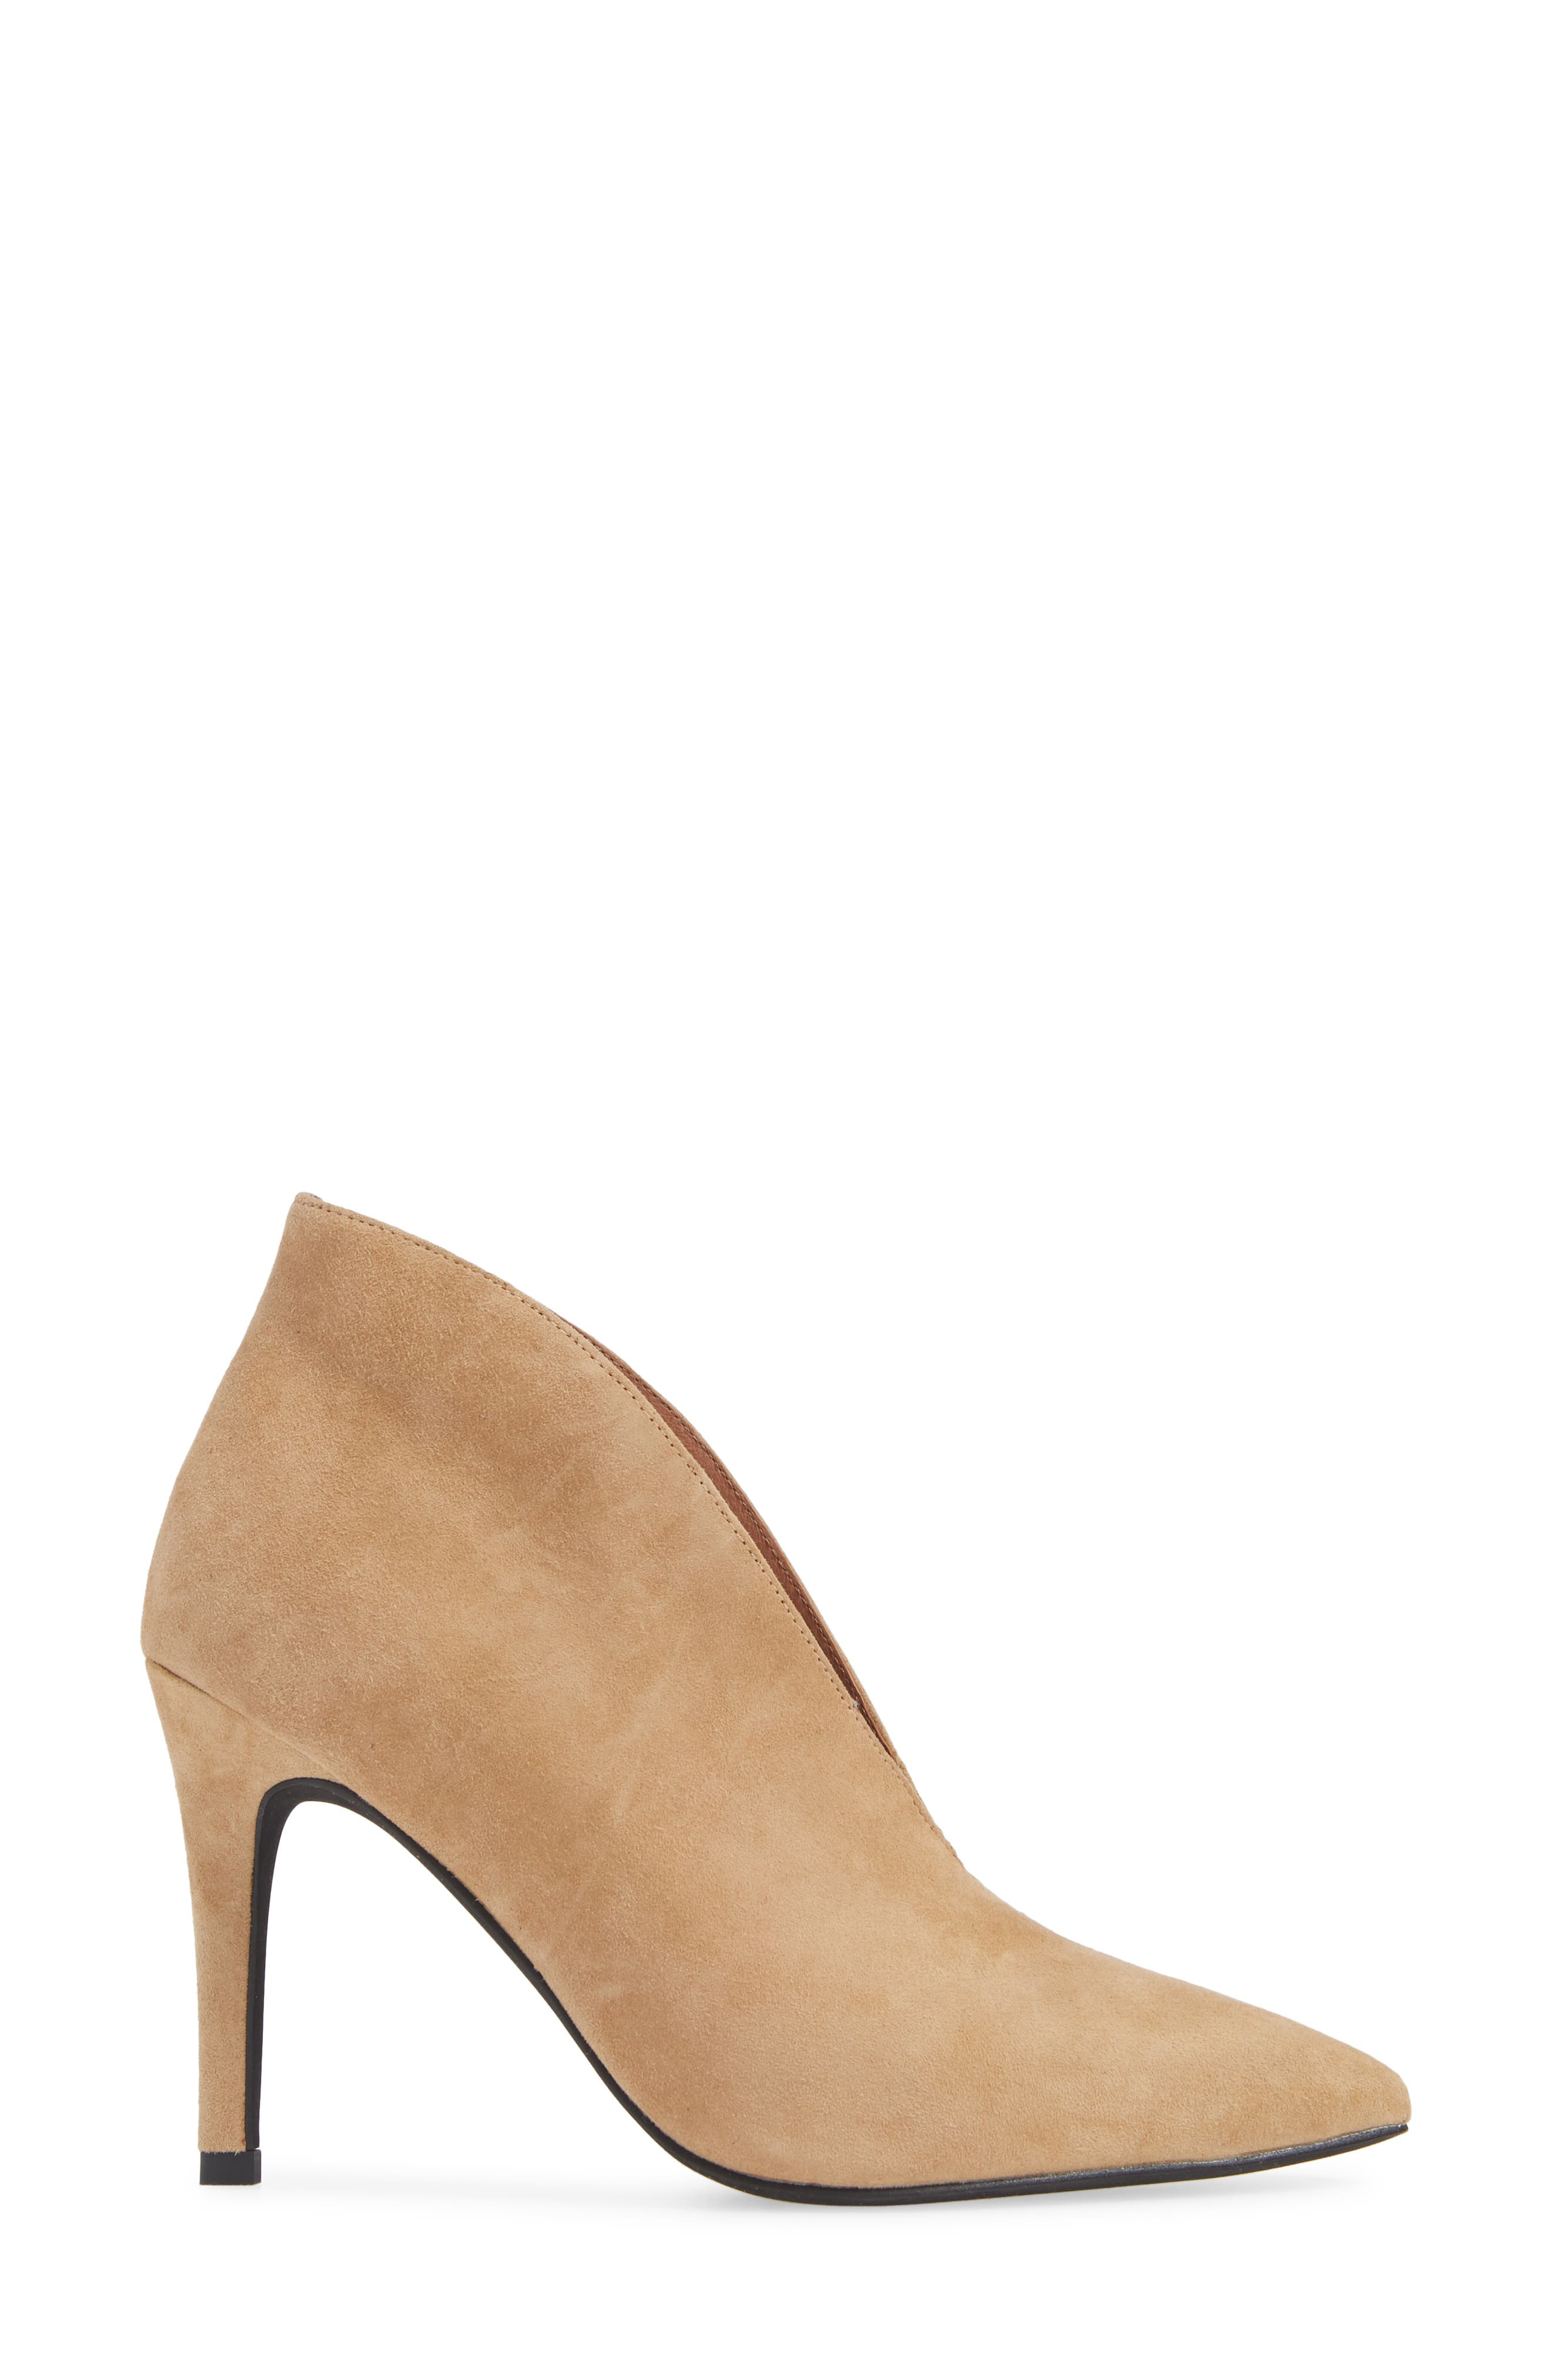 Electron Bootie,                             Alternate thumbnail 3, color,                             NUDE SUEDE